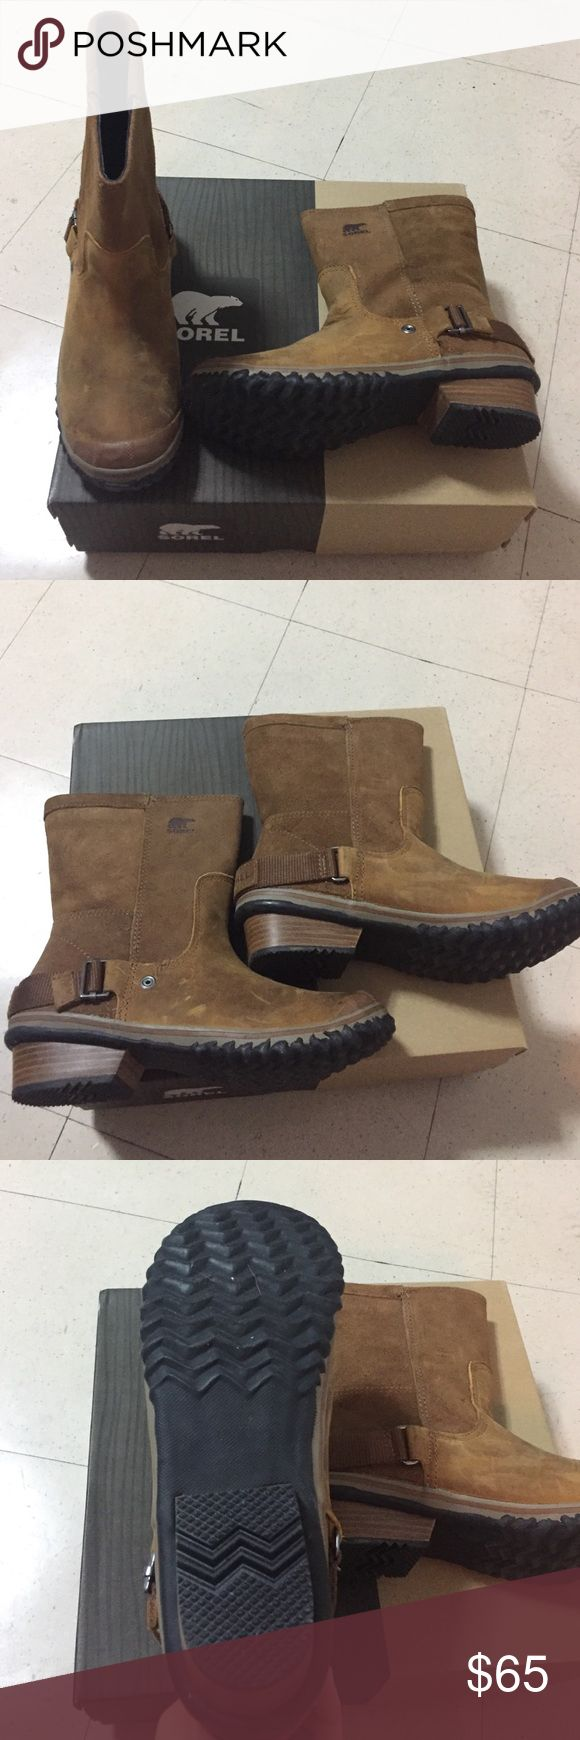 Sorel rain/snow weather suede booties. In great condition! Wore once only! Great for Rain and snow! Sorel Shoes Winter & Rain Boots